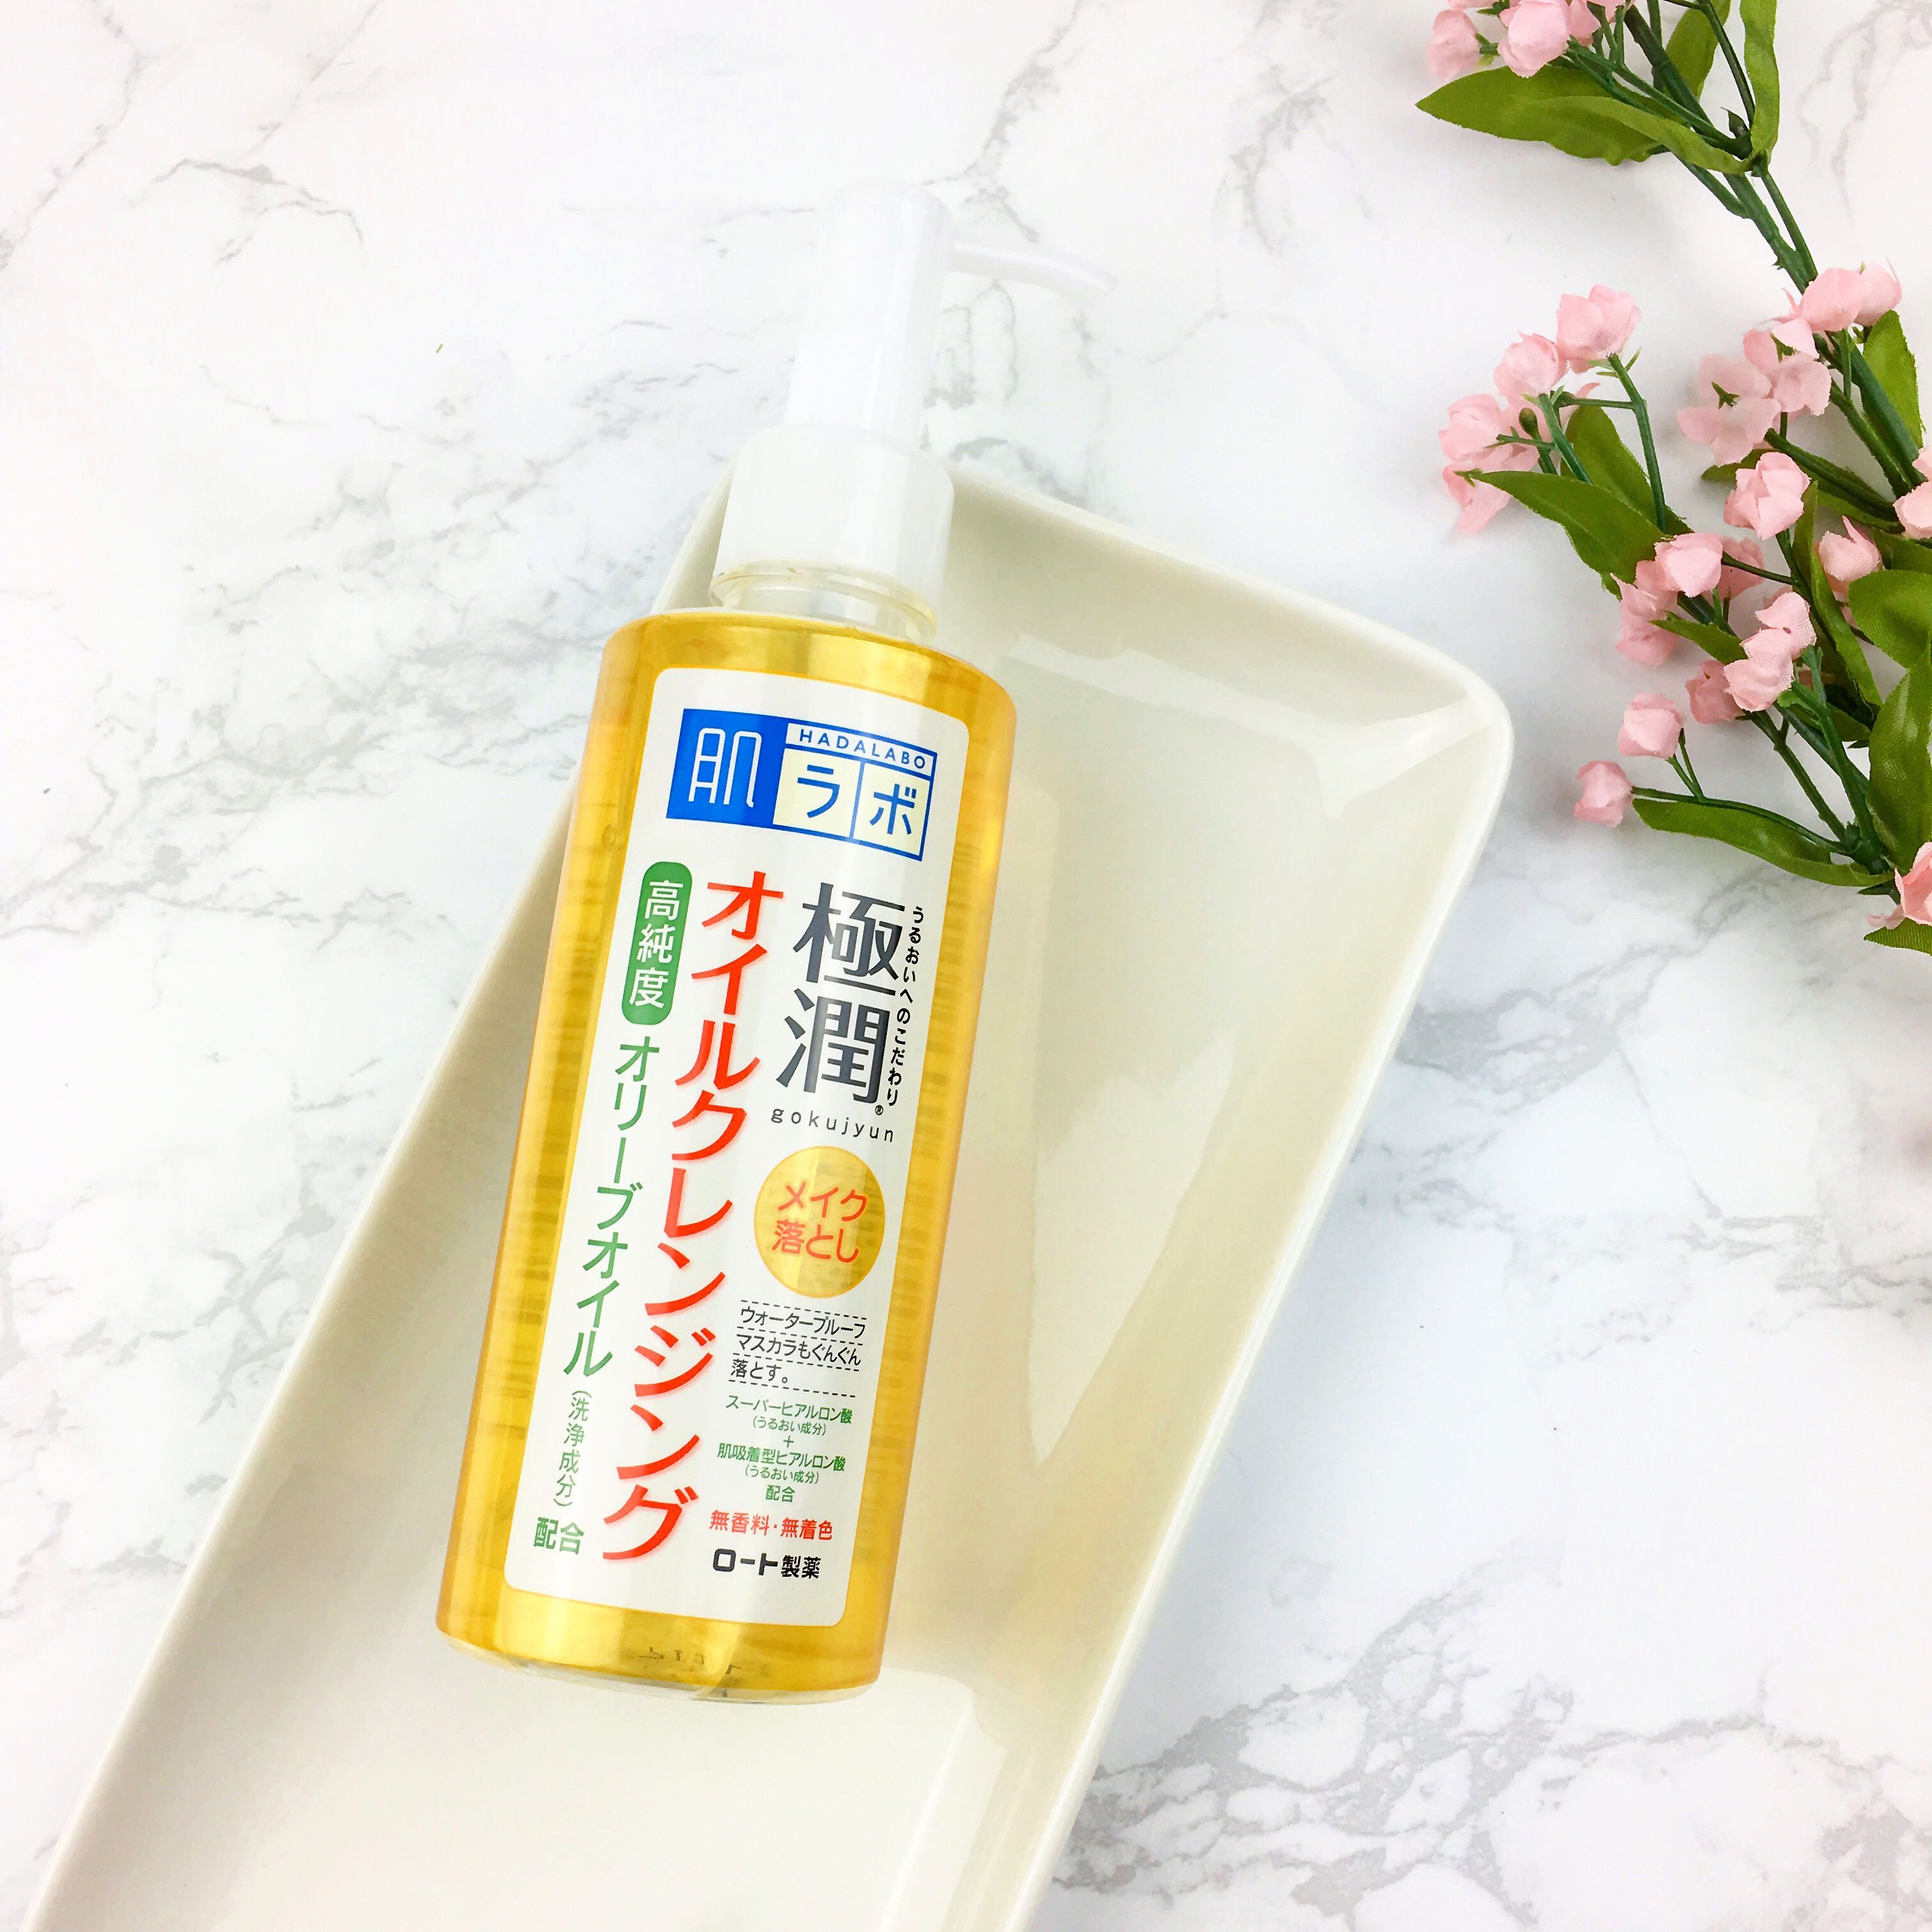 Hada Labo GokuJyun Oil Cleansing Makeup Remover. It